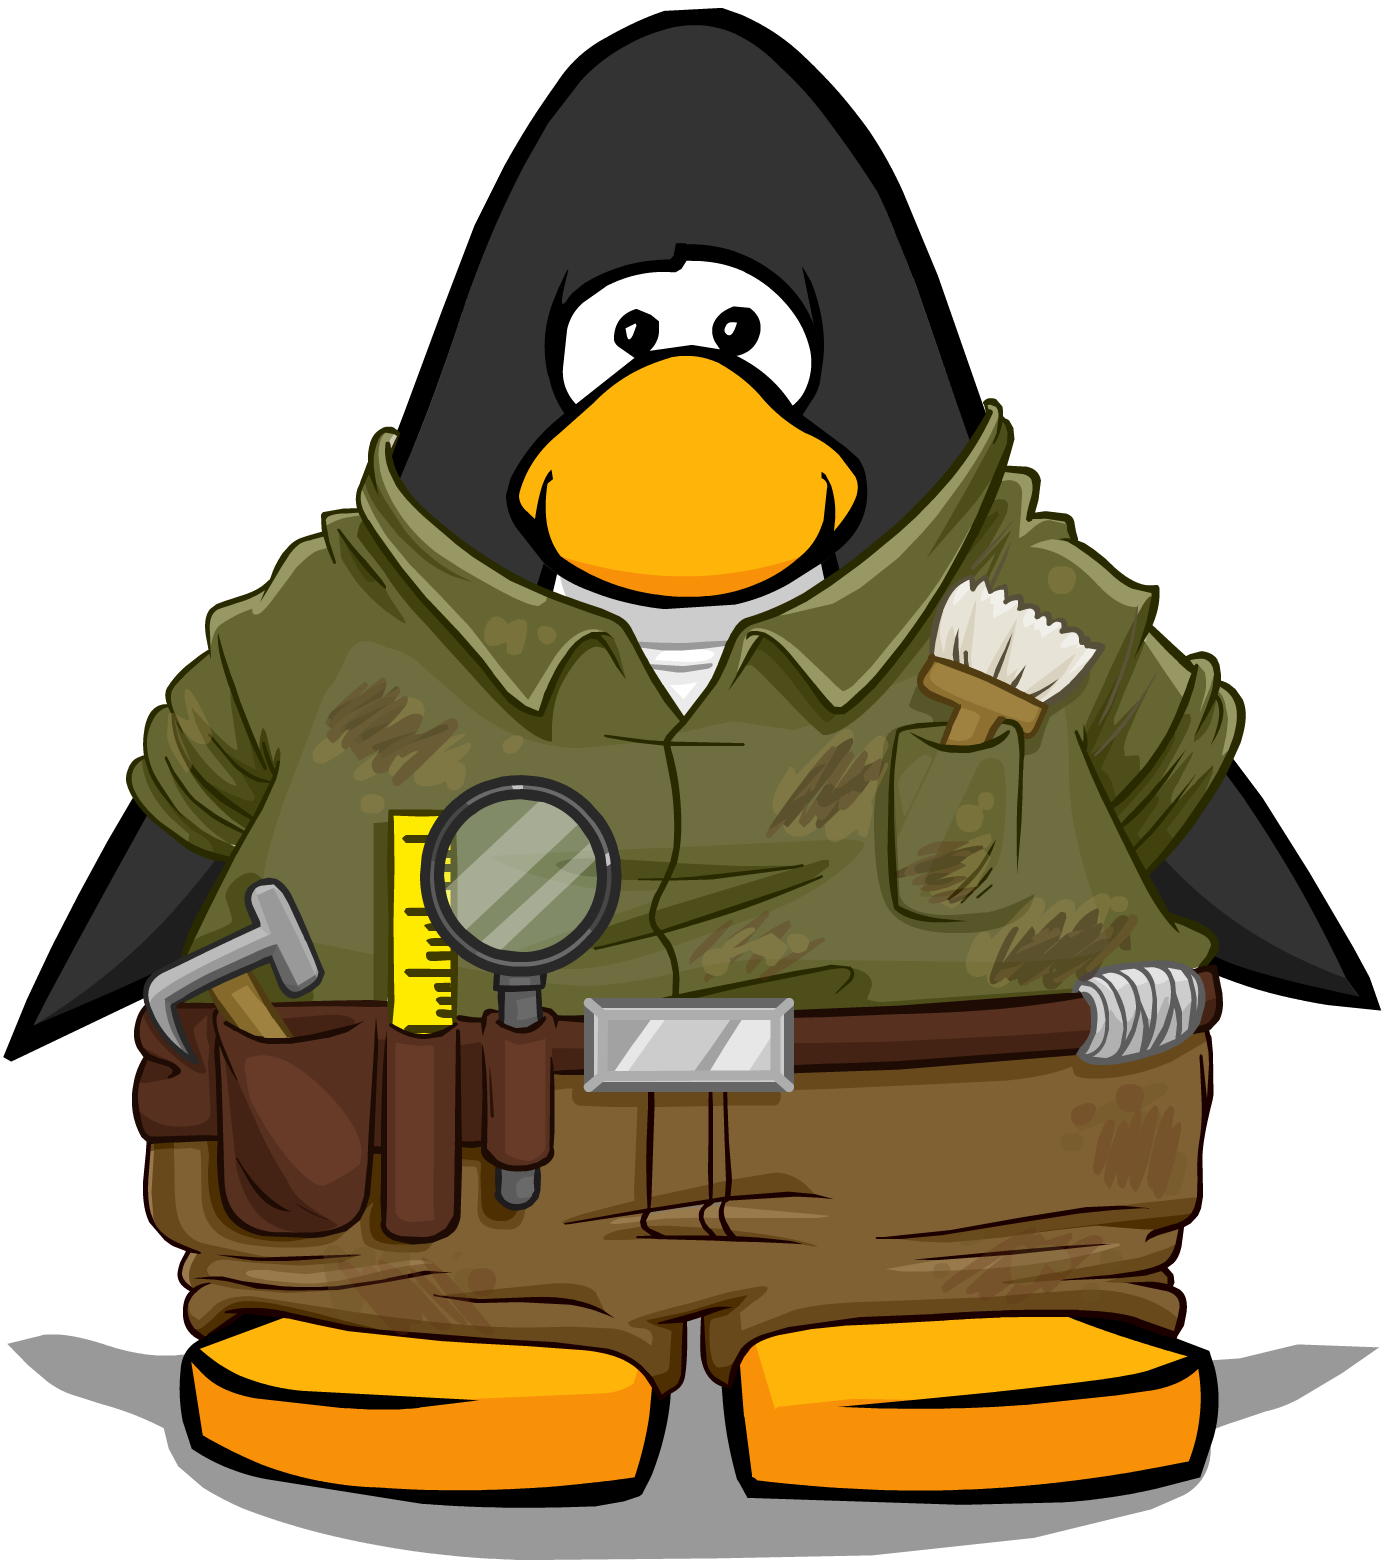 Archaeologist Outfit On Player Card.png - Archaeologist PNG